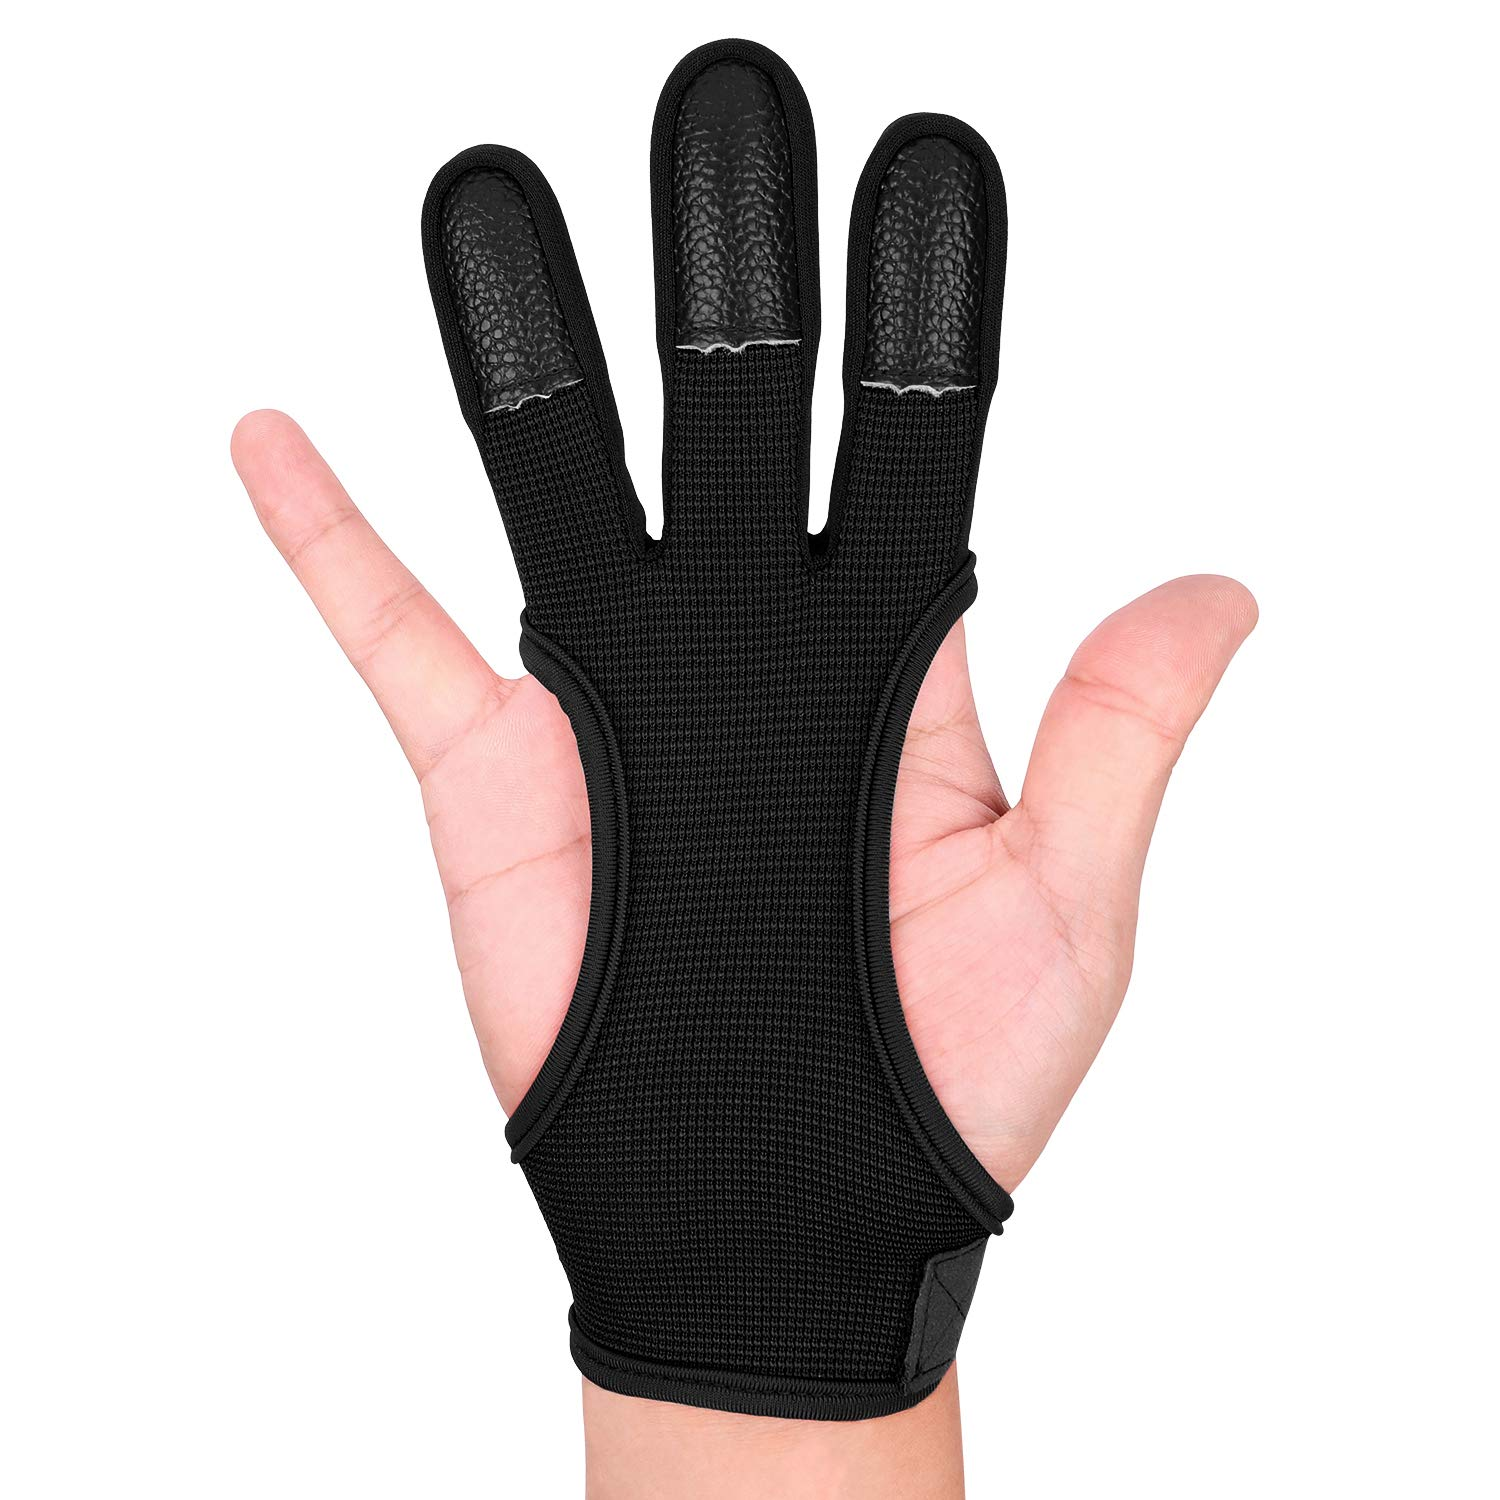 FitsT4 Archery Leather Protective Shooting